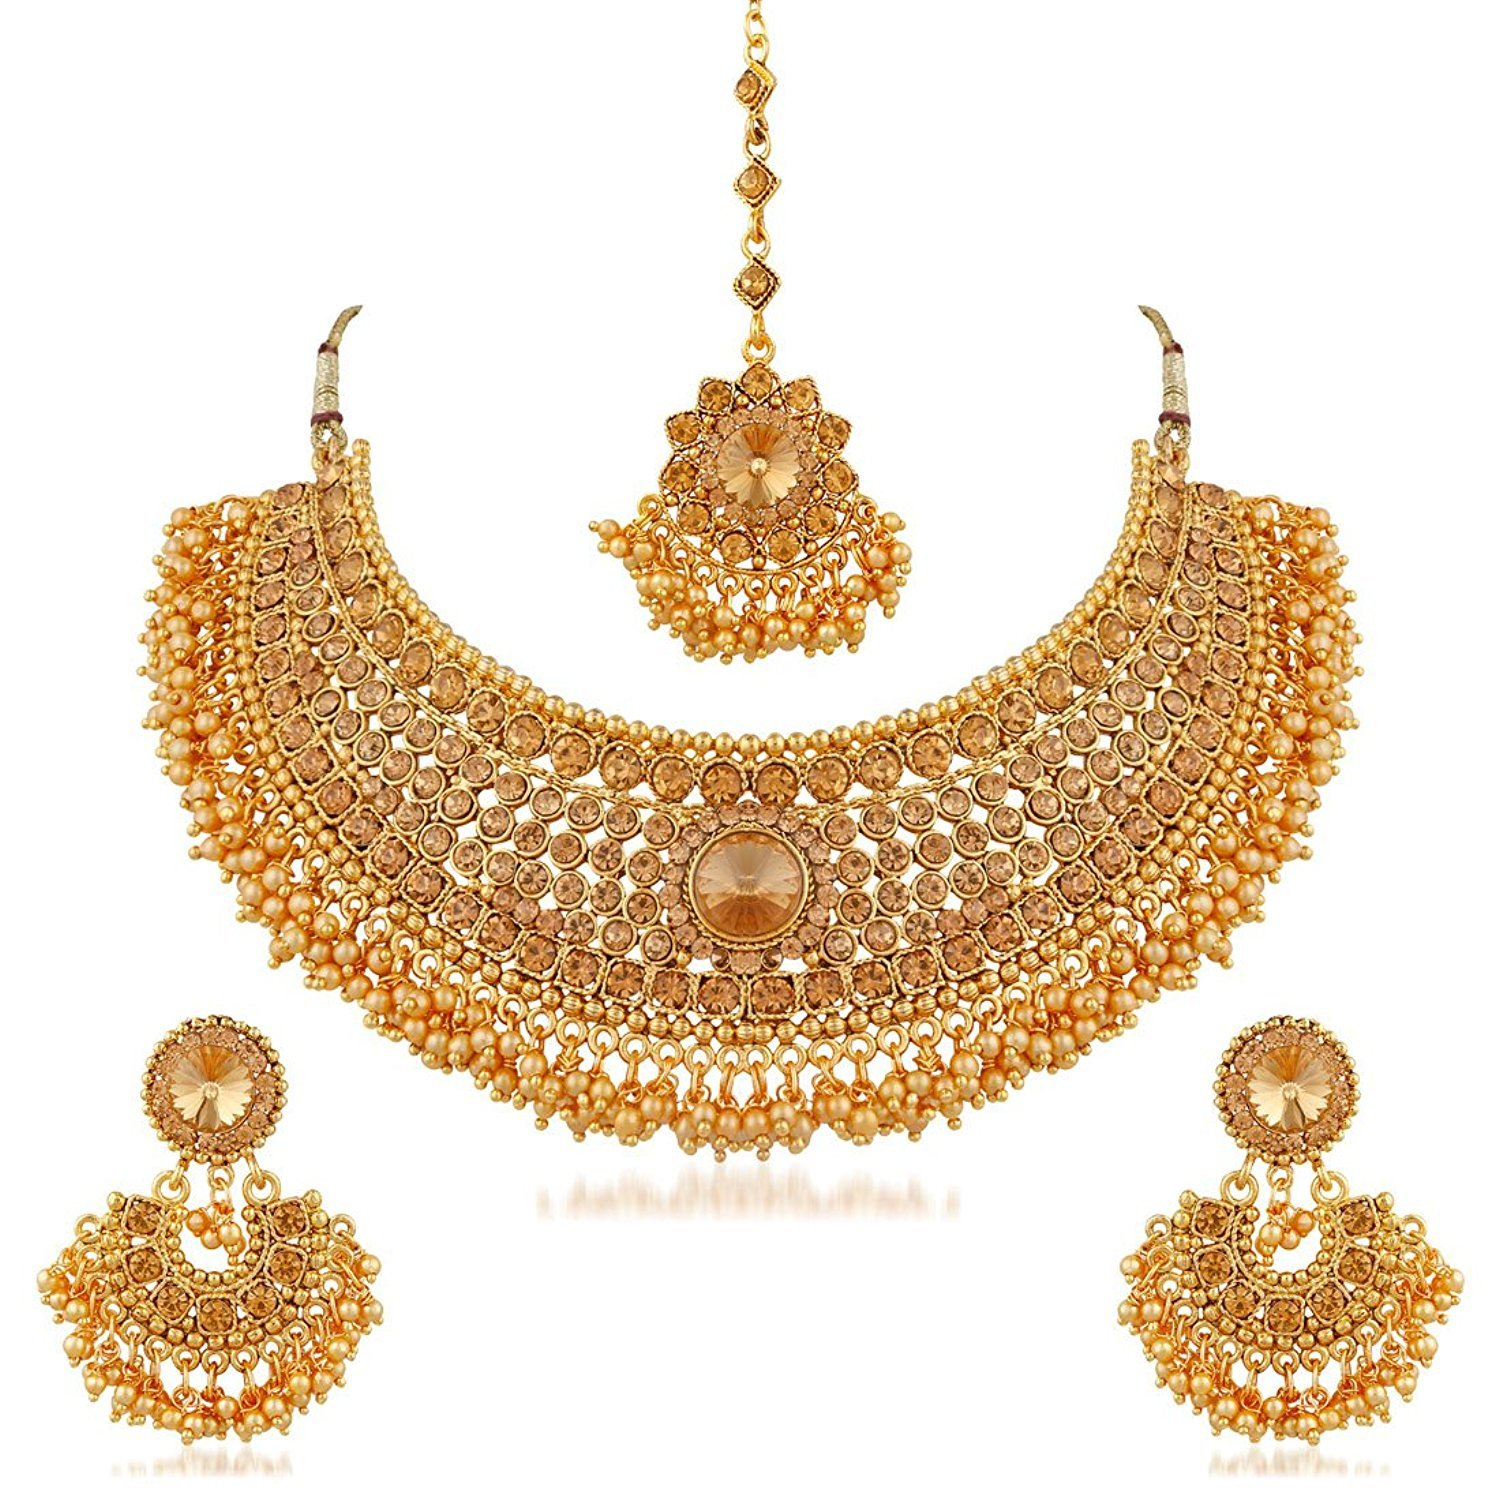 dp women earrings traditional for necklace temple buy coin youbella set with jewellery pearl